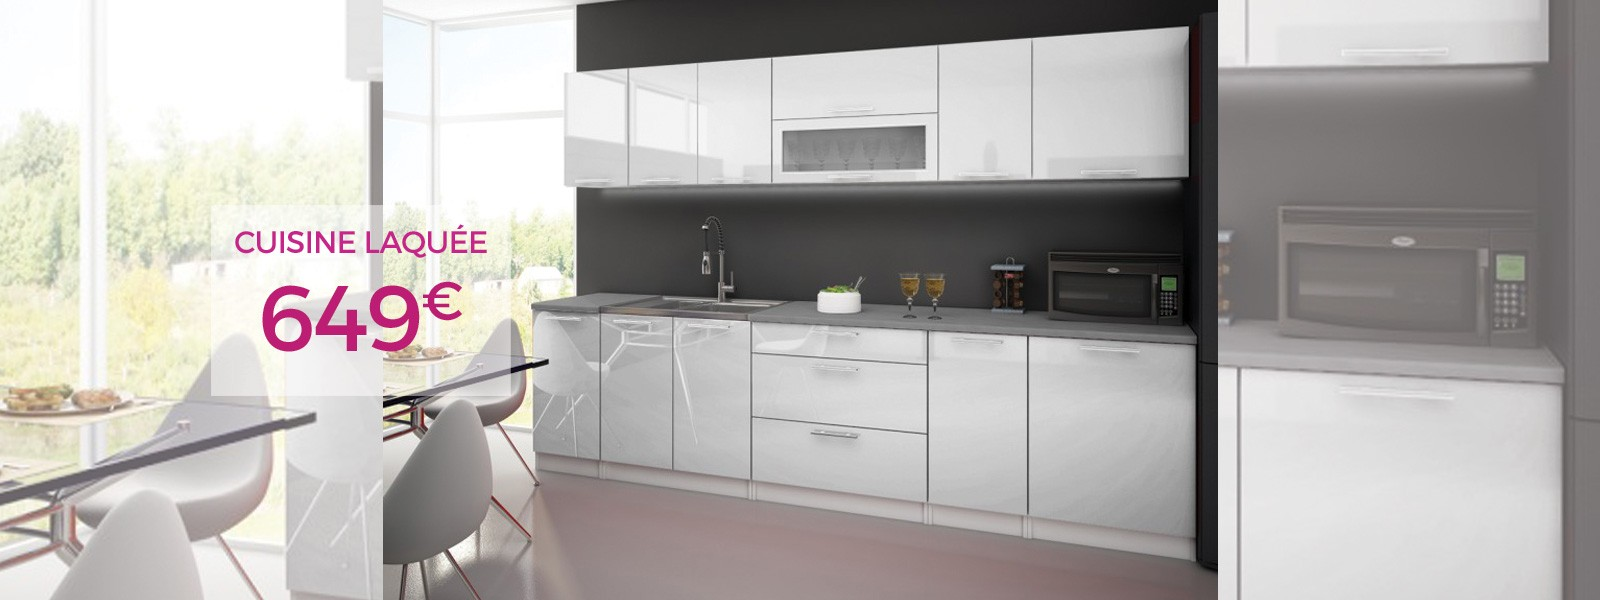 CUISINE LAQUEE HIGH GLOSS 3METRES